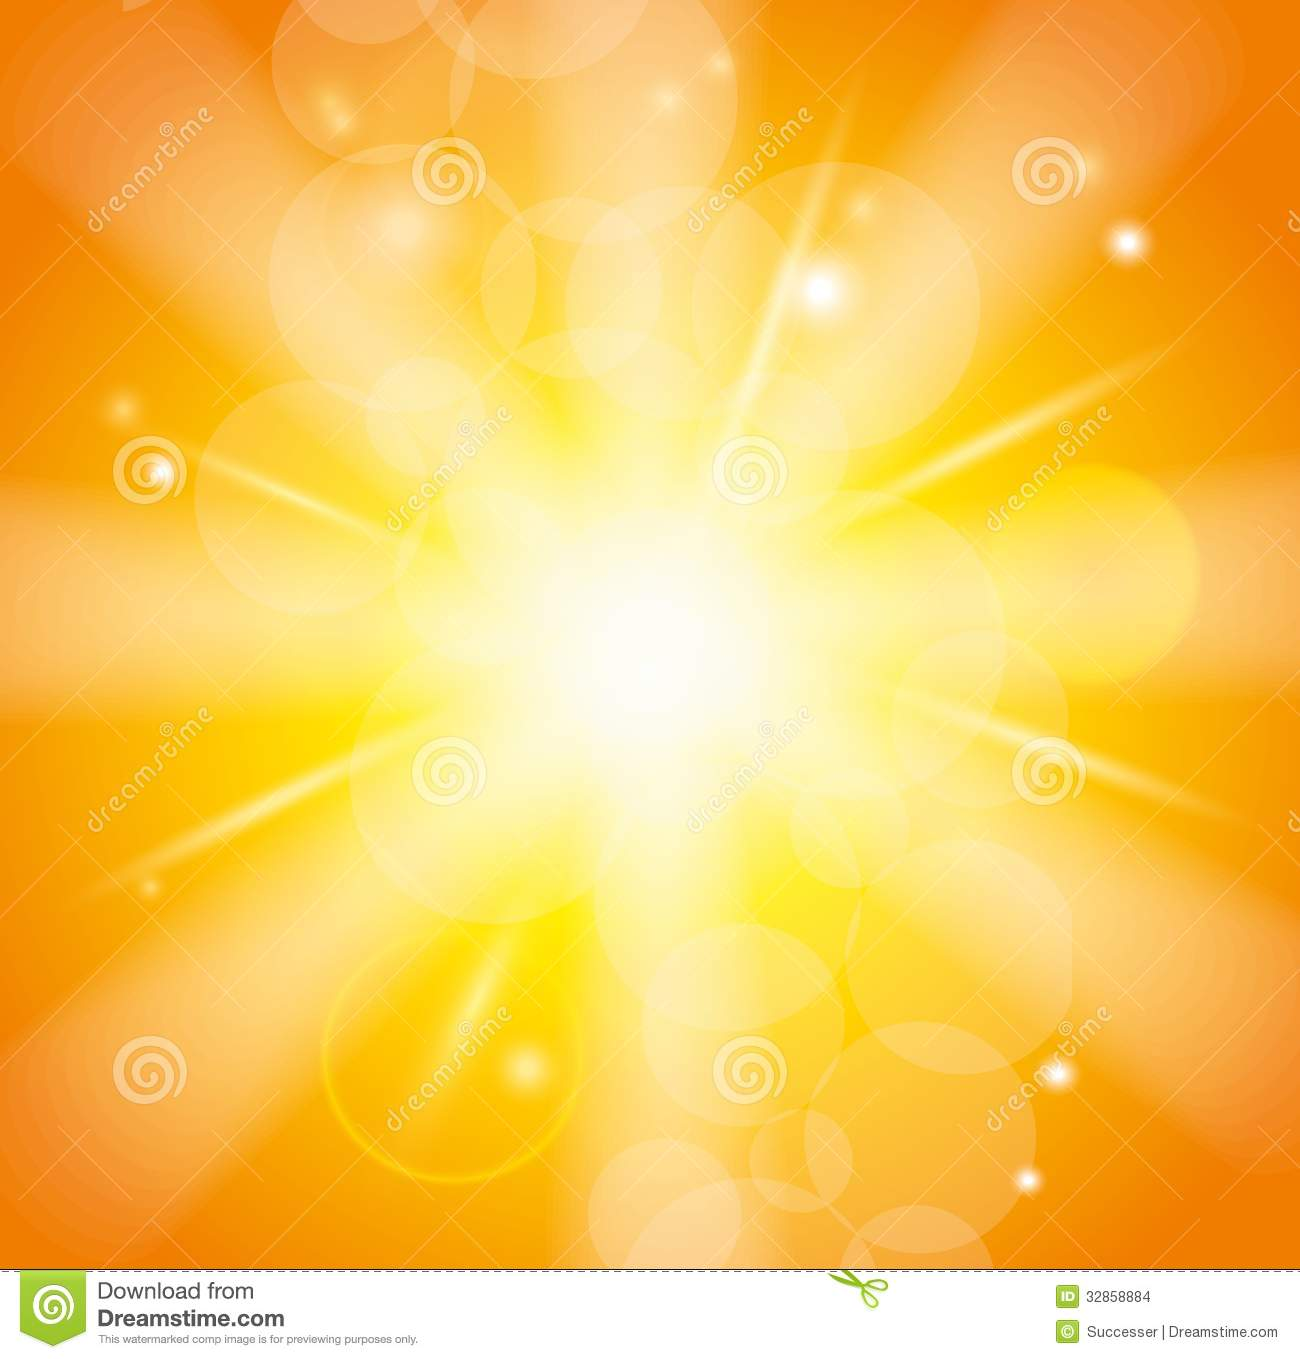 Sun Beams With Orange Yellow Blurred Stock Images - Image: 32858884